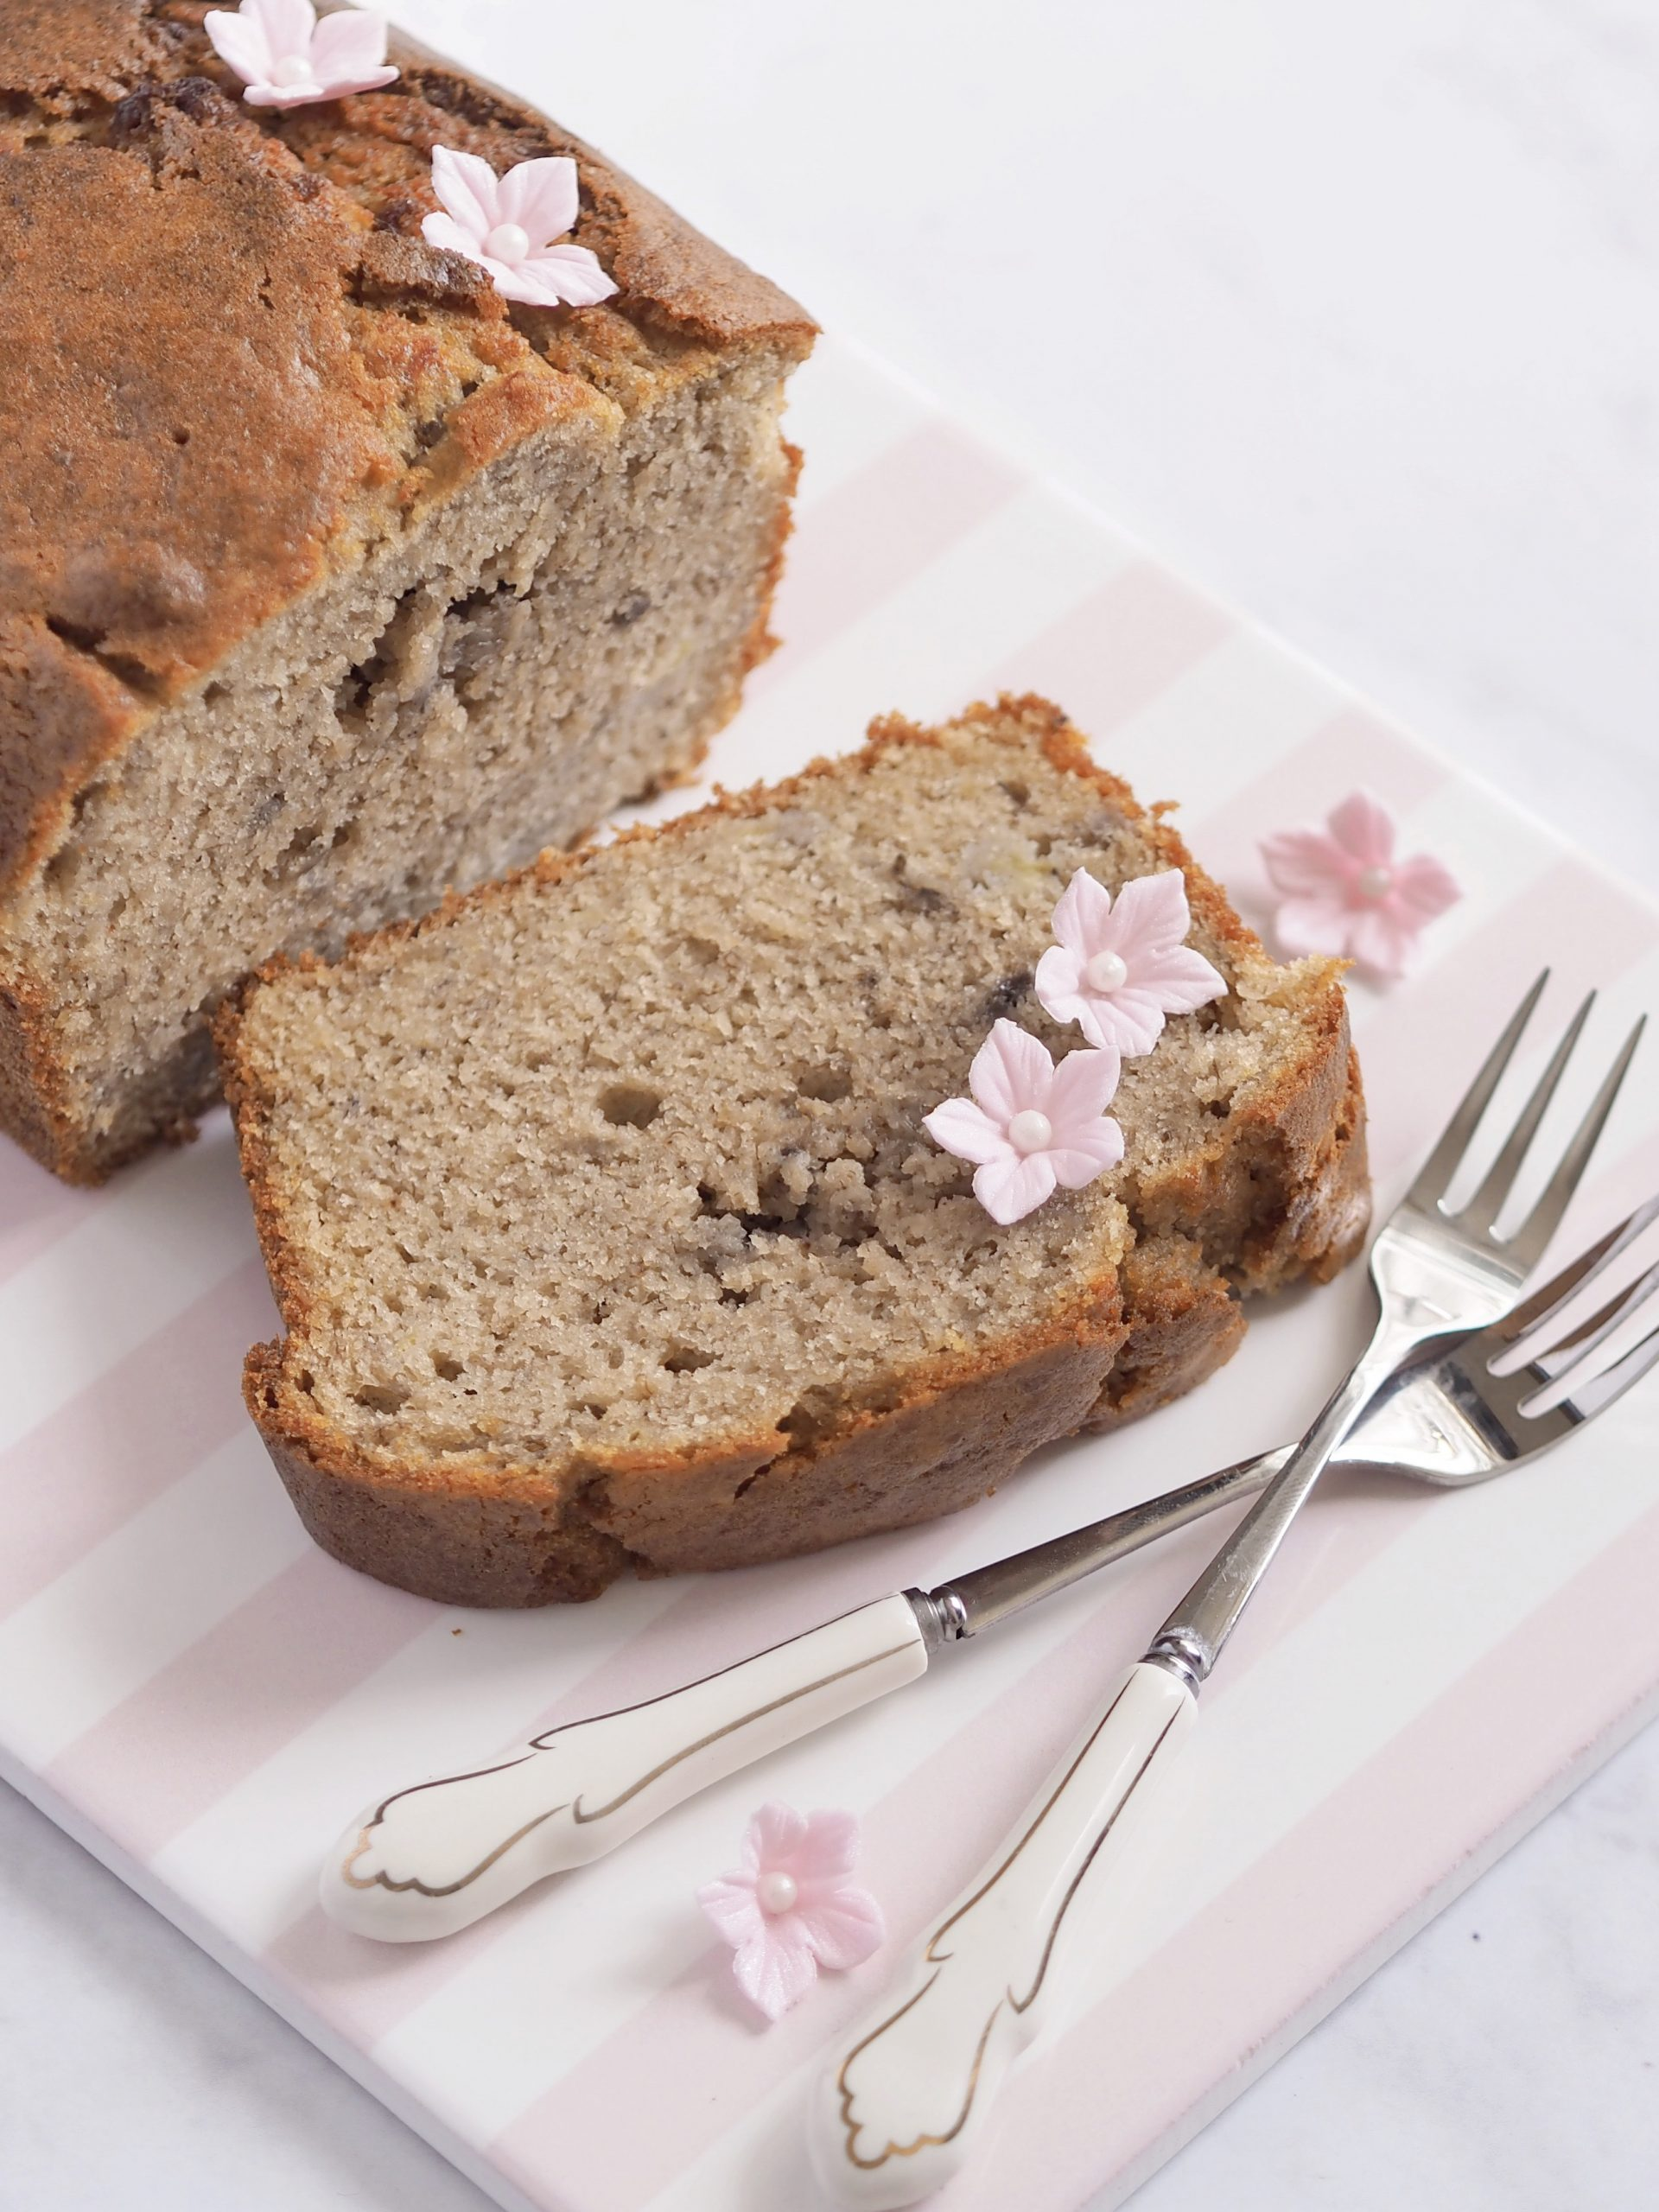 Classic & Delicious Banana Loaf Cake Recipe